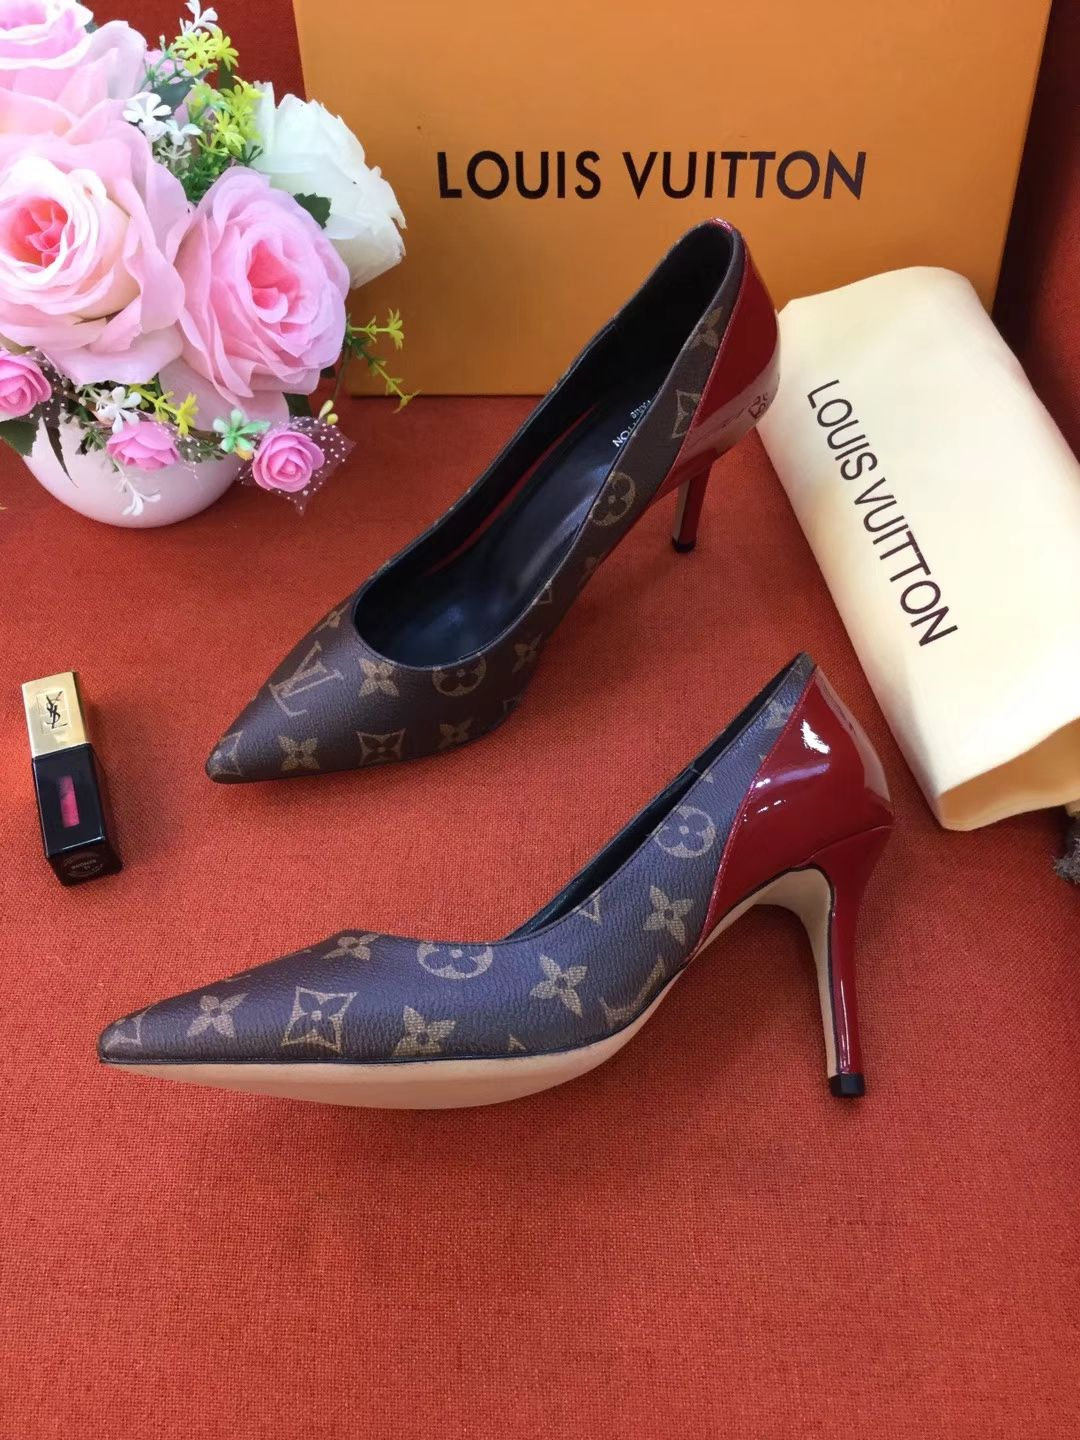 Replica Womens Shoes Louis Vuitton Monogram Pump 90mm Lv Knockoff Shoes 35 To 41 A38pp320 Aa4 Louis Vuitton Shoes Heels Louis Vuitton Shoes Louis Vuitton Boots